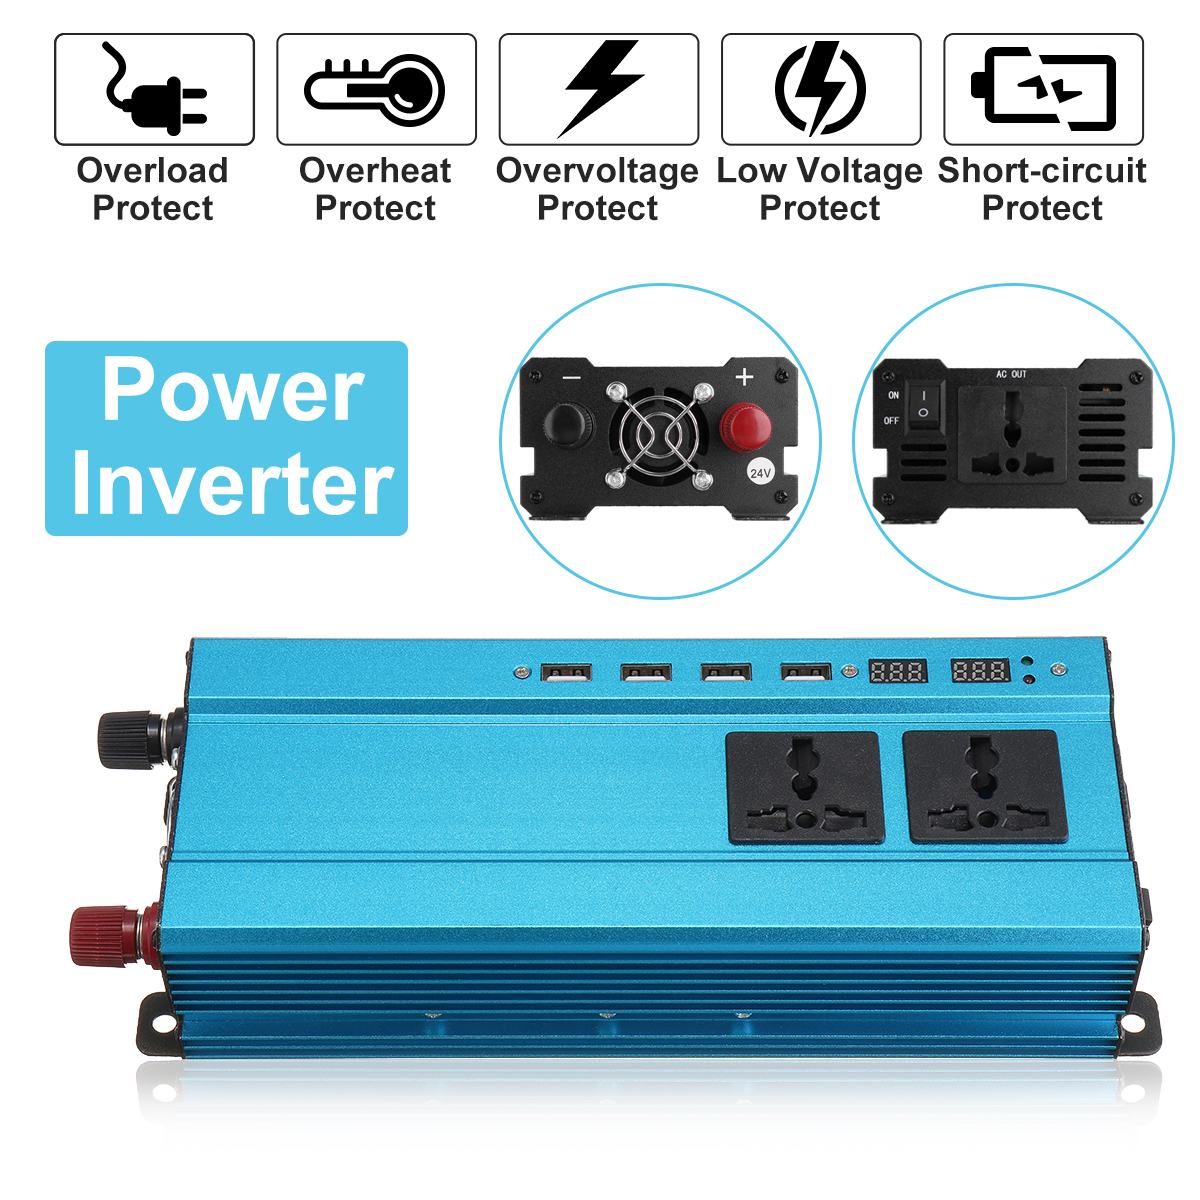 2000W Solar Power Inverter 12V 220V DC-AC Sine Wave Car Inverter Voltage Converter Adapter Charger Transformer Inversor 12V 220 car inverter 12v 220v power inverters voltage transformer converter 12 220 1000w charger on display solar adapter 12v 220v dy104